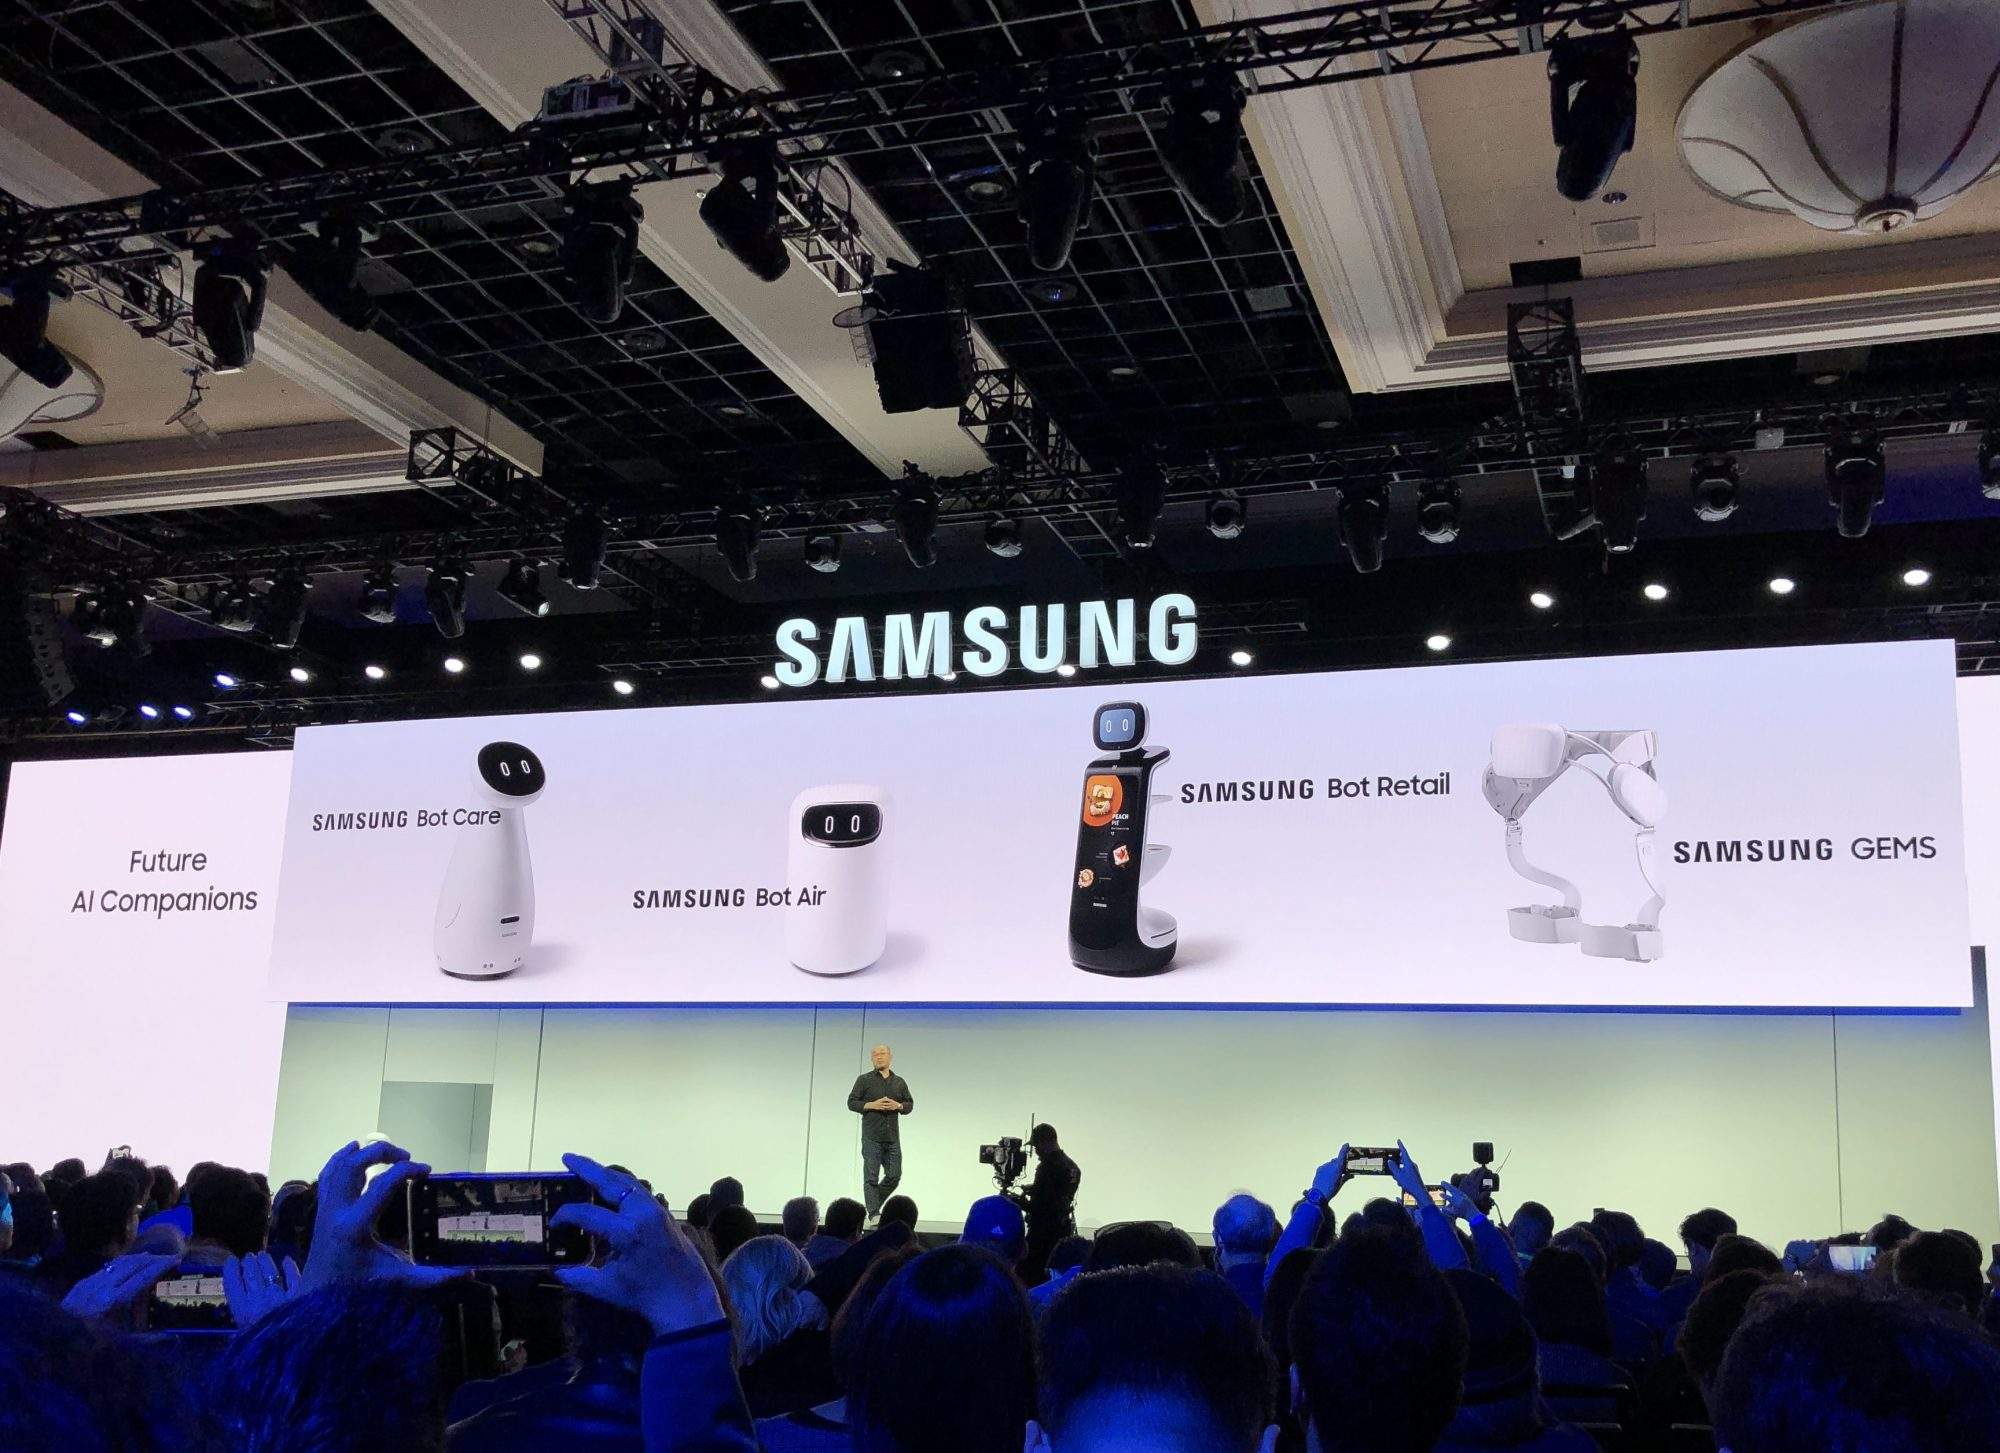 Samsung's Bots Showcased at CES 2019